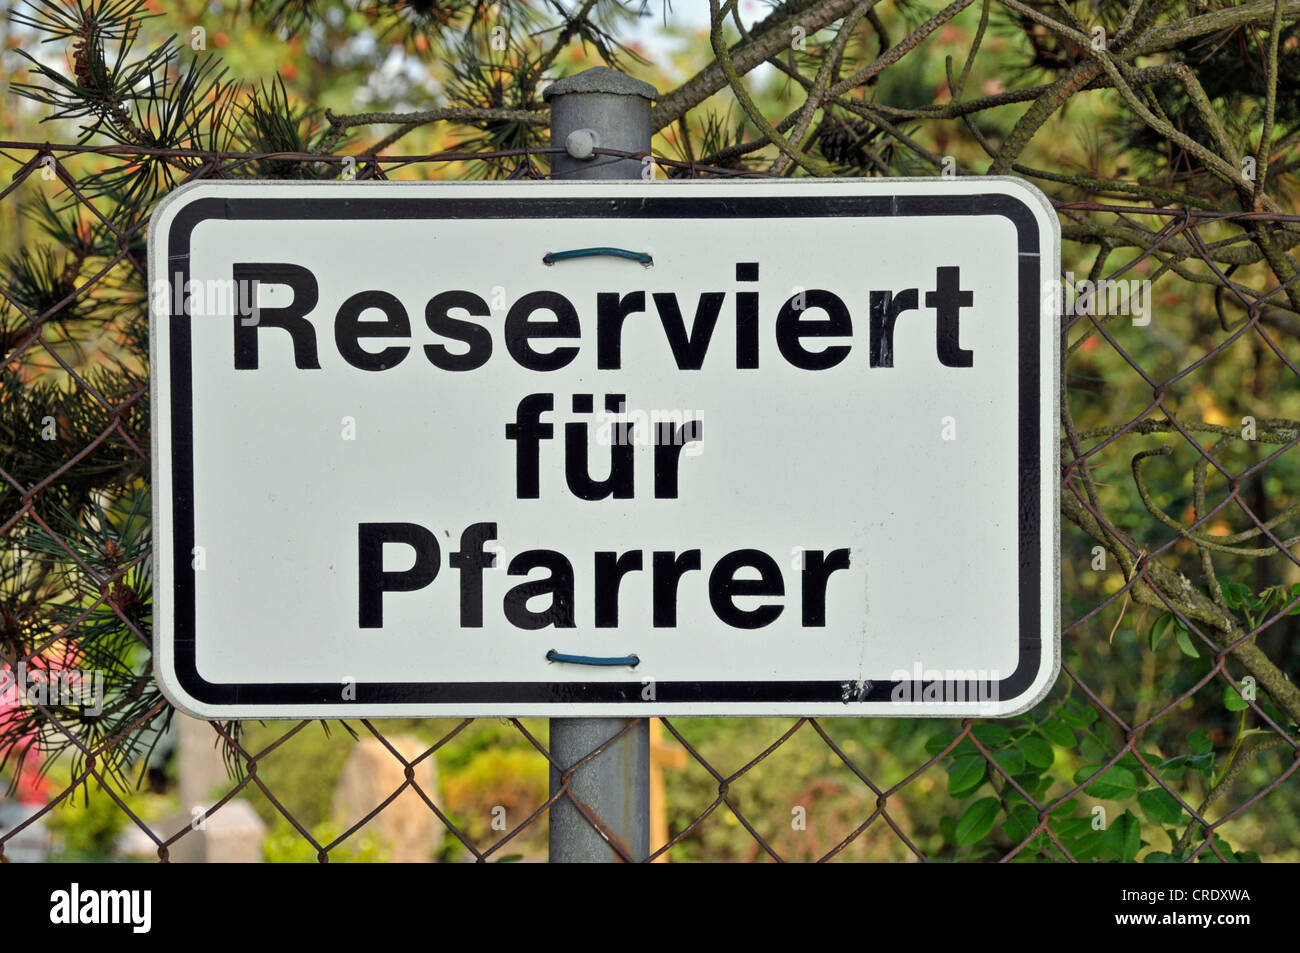 Sign, Reserviert fuer Pfarrer or reserved for pastors, parking ground, Swabian Alb, Germany, Europe, PublicGround - Stock Image